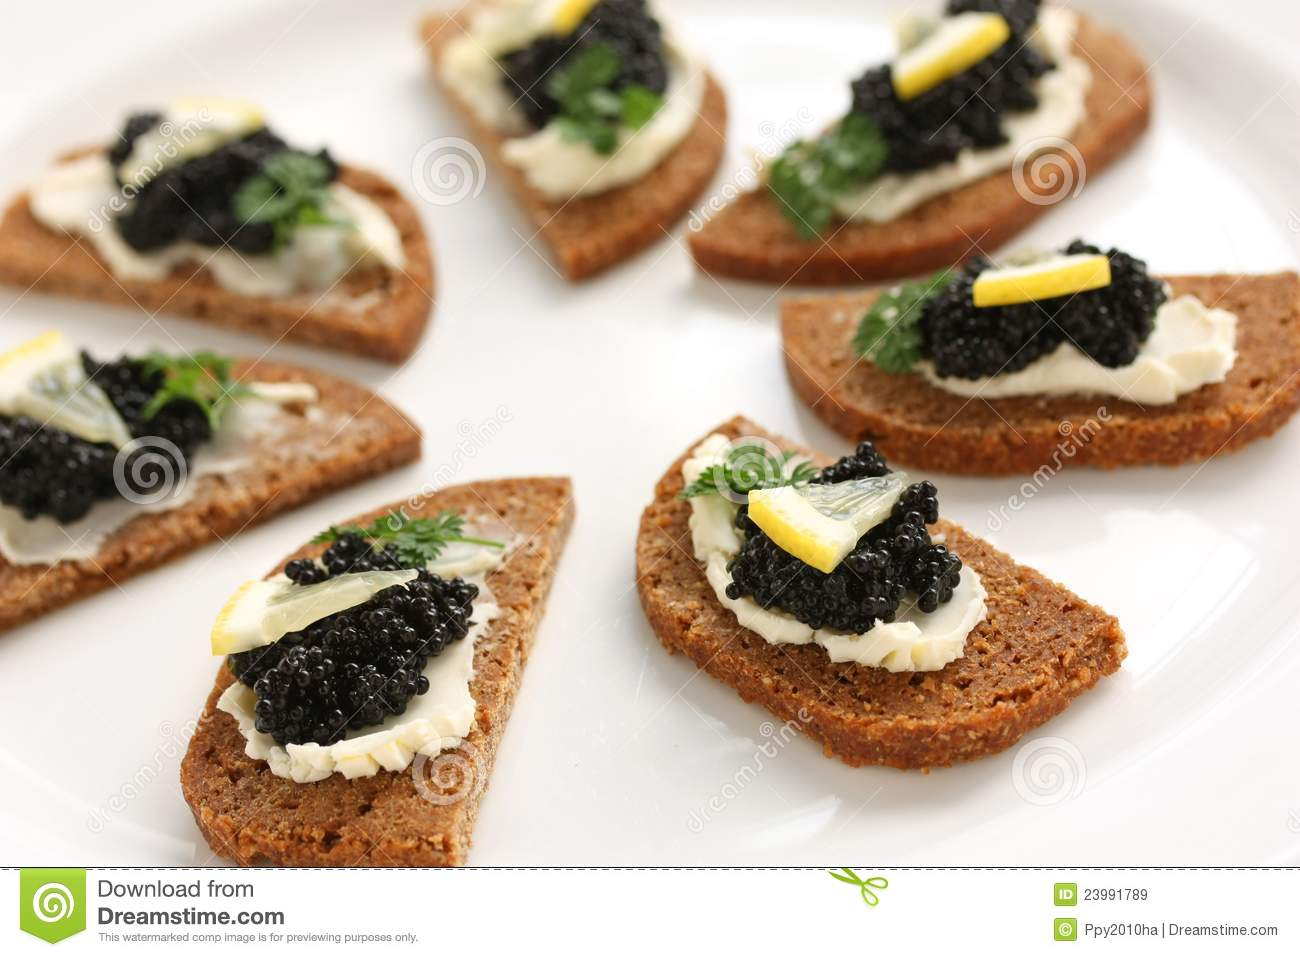 caviar canapes stock image image of starter canape. Black Bedroom Furniture Sets. Home Design Ideas